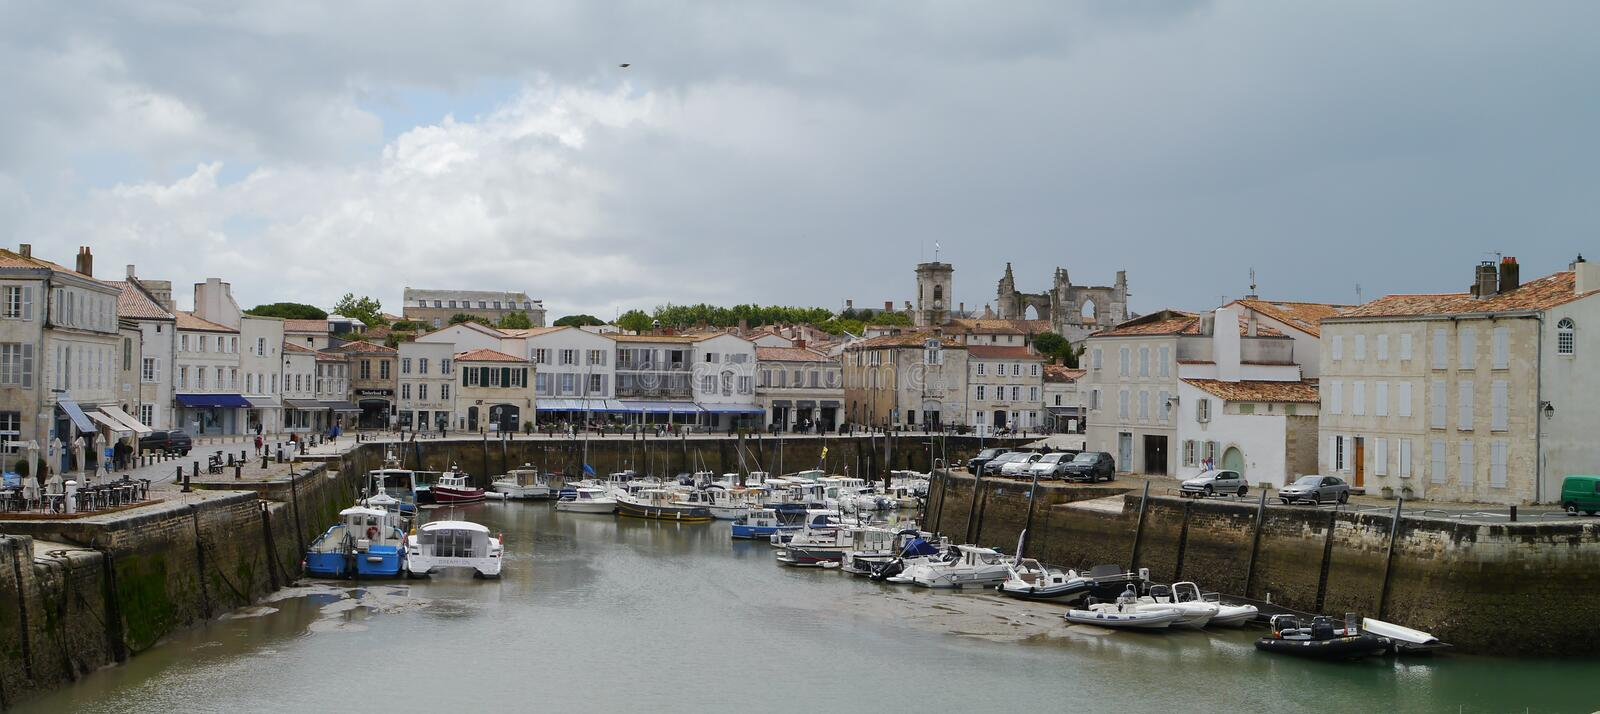 Dark clouds in harbour in St Martin de Re, Il de Re. Storm clouds over Saint Martin de Re, Il de Re, South West France. Harbour side. boats in water. Historic stock photo